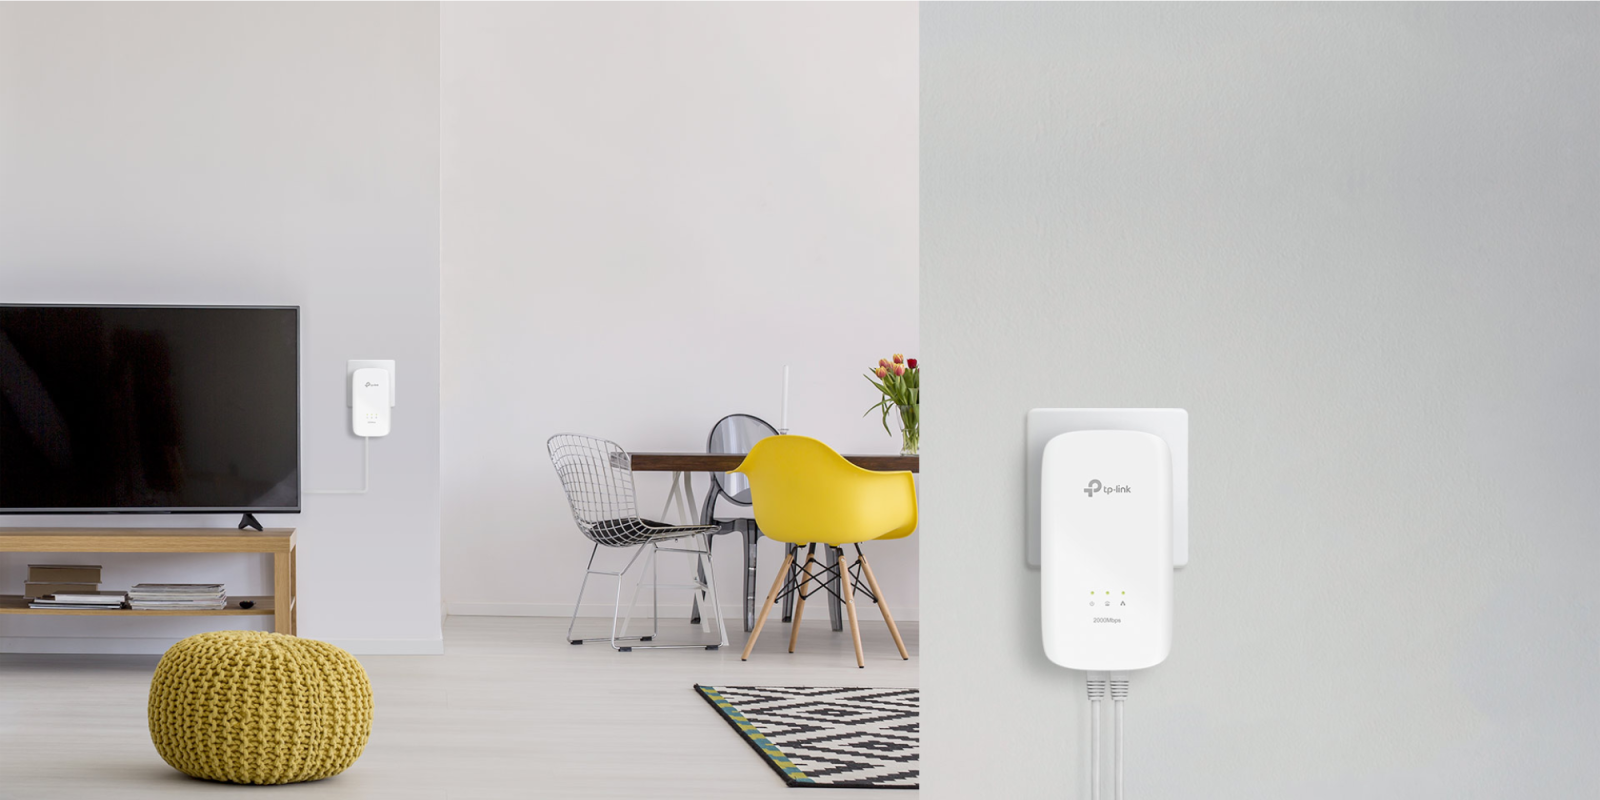 TP-Link's $60 Gigabit Powerline Ethernet Adapter Kit touts up to 2000Mbps speeds (33% off)